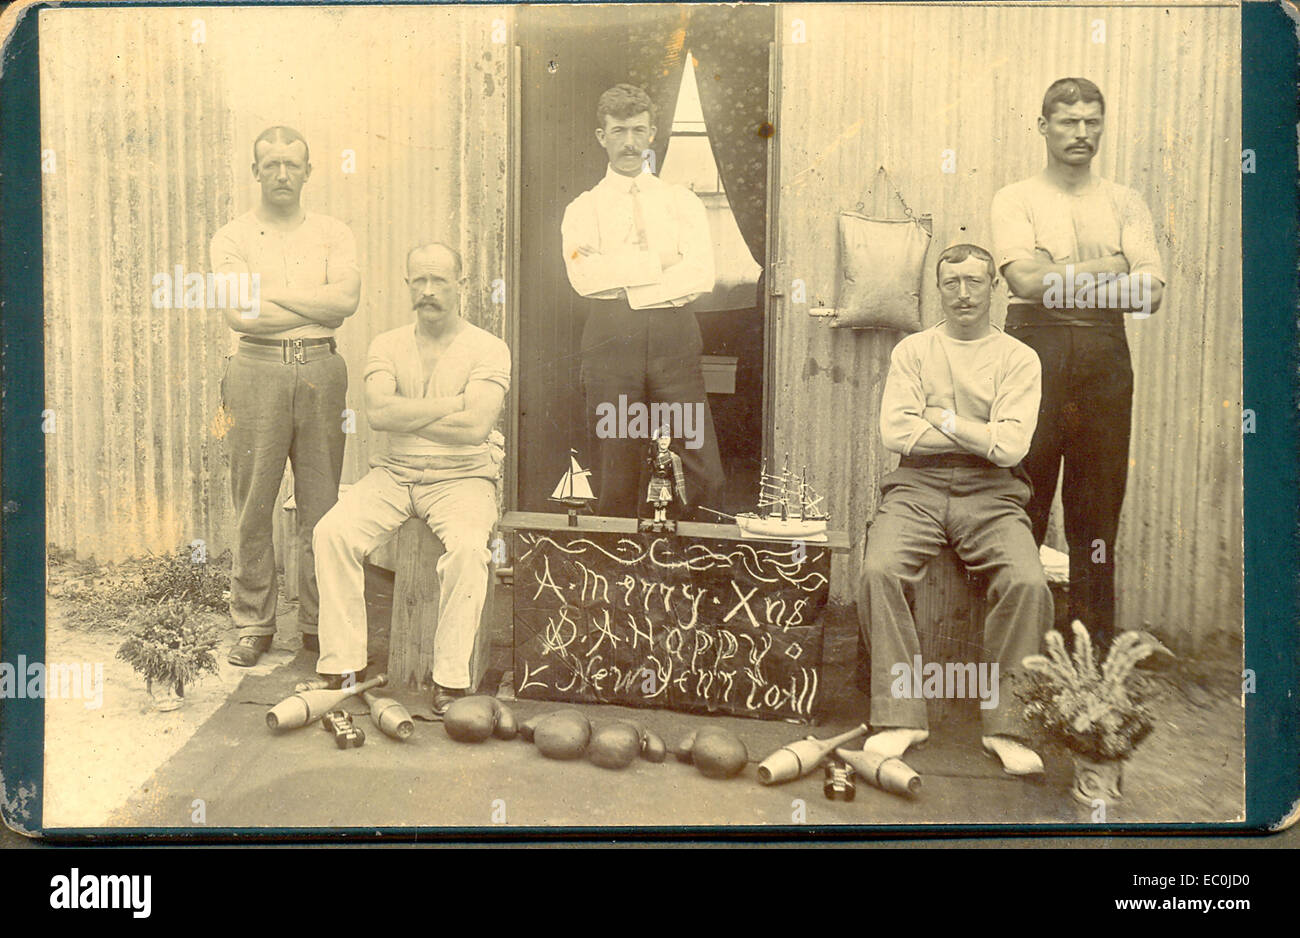 1900's Boxing Stock Photos & 1900's Boxing Stock Images - Alamy